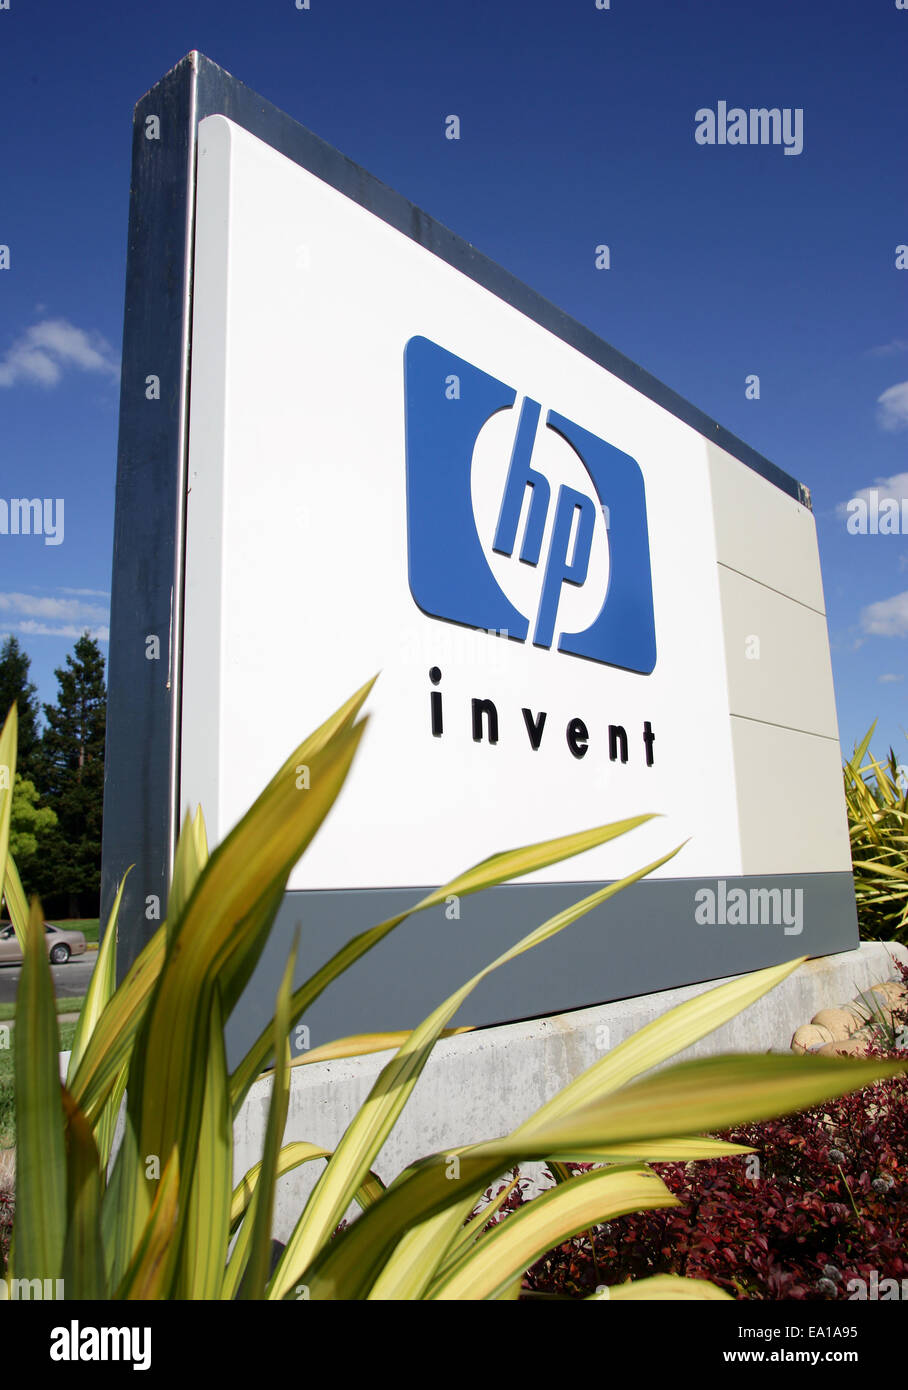 Company sign of hp hewlett packard in front of headquarters in company sign of hp hewlett packard in front of headquarters in palo alto silicon valley california usa biocorpaavc